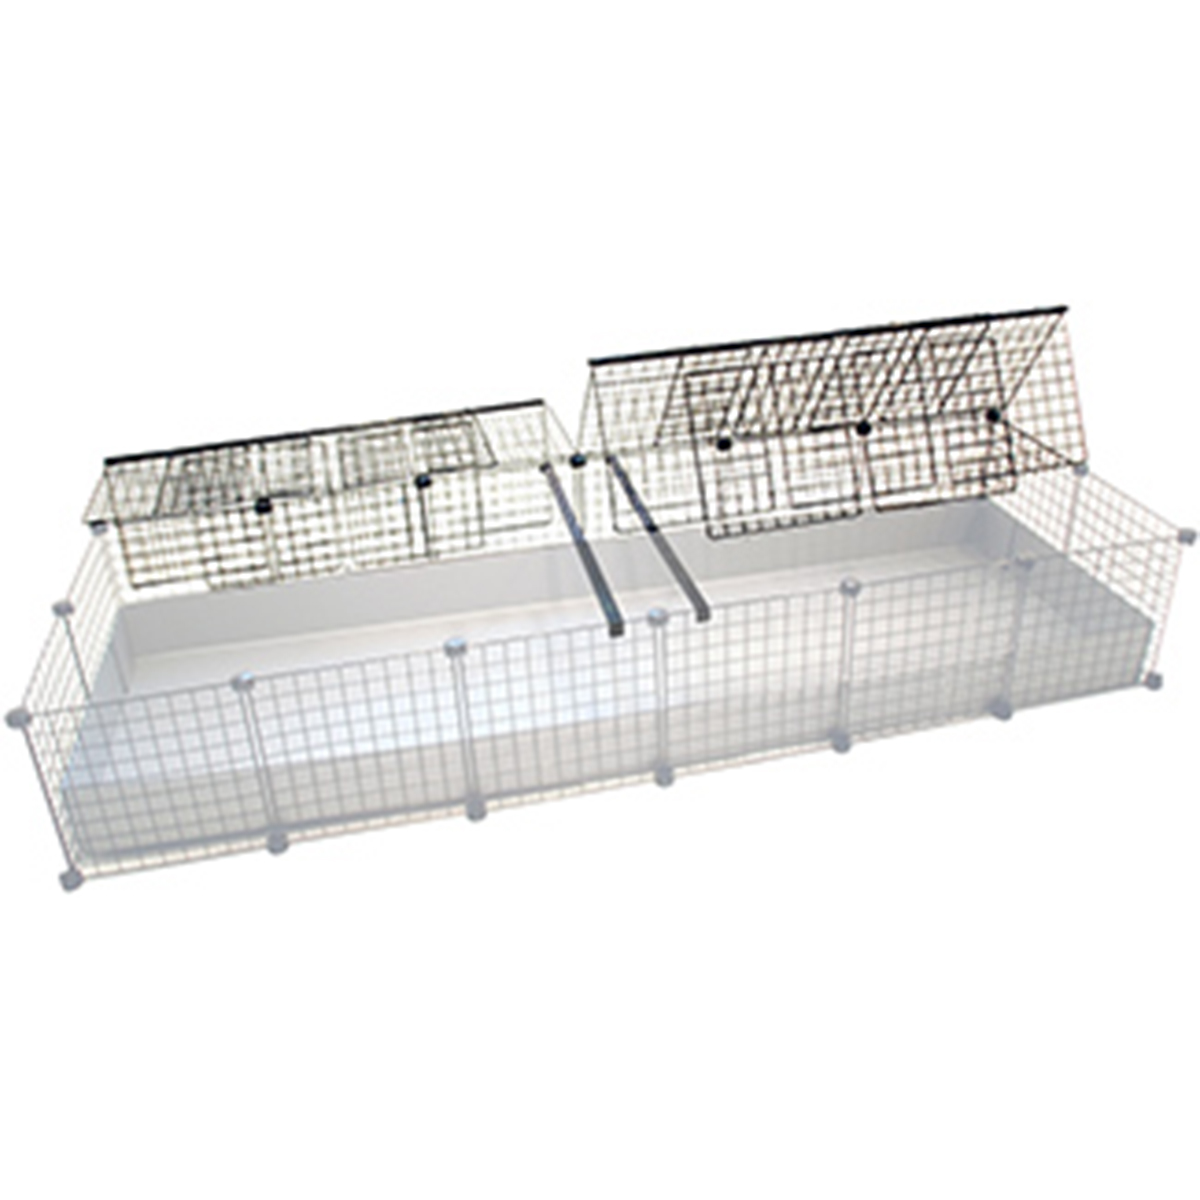 Jumbo Cage with cover tented back